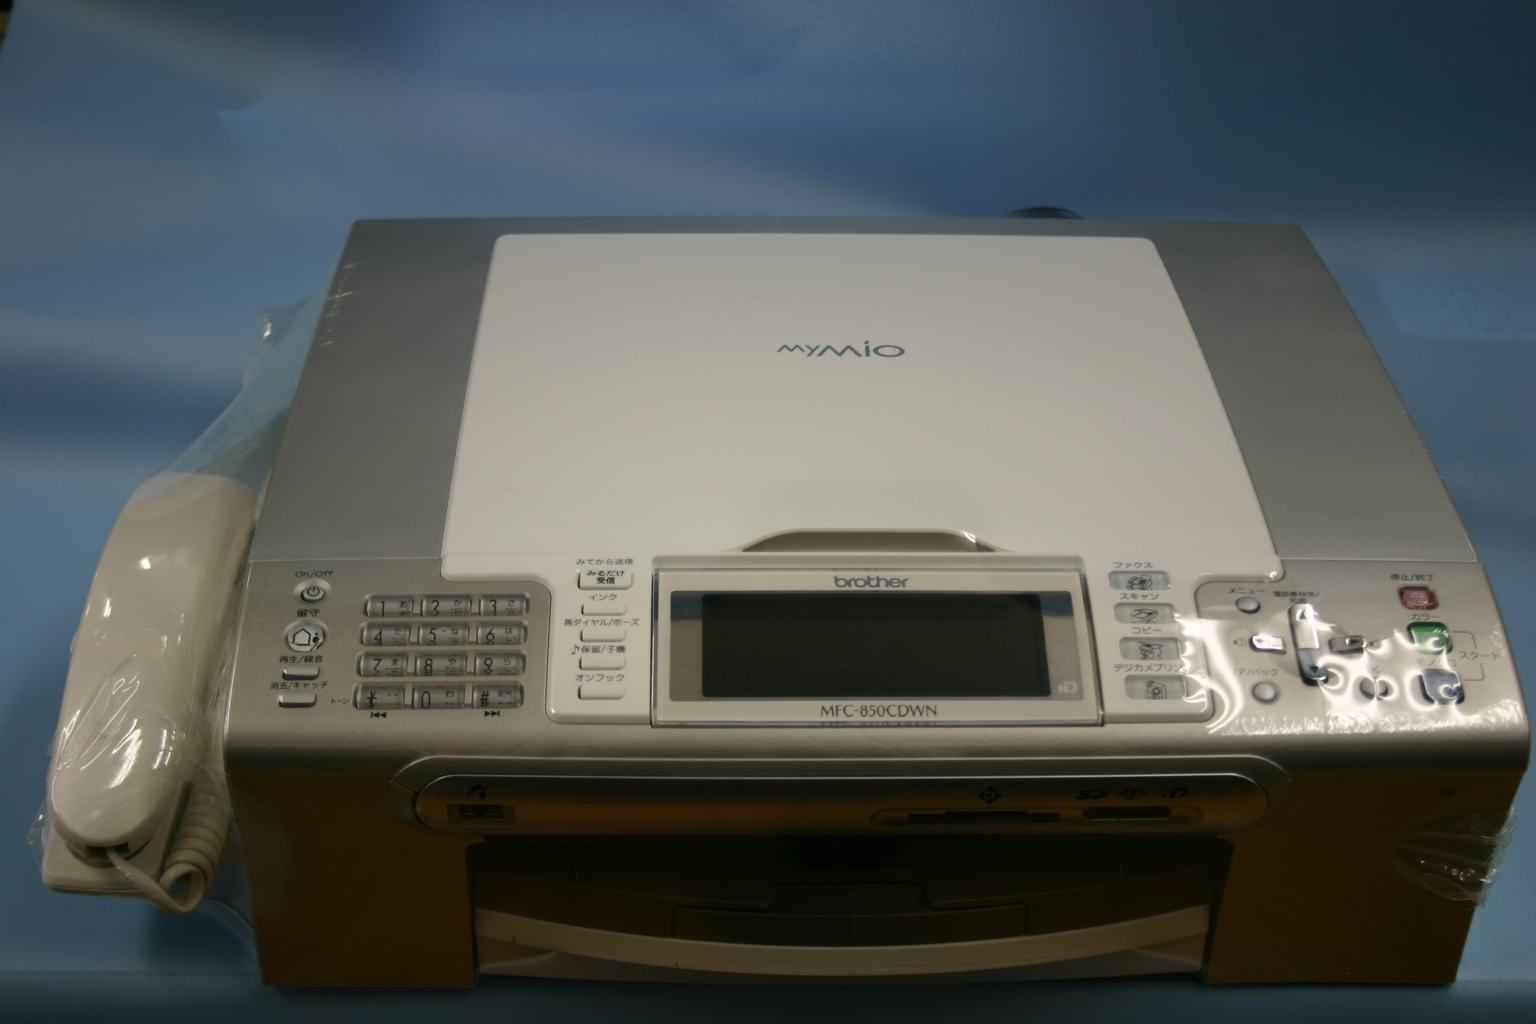 brother FAX(MFC-850CDWN)